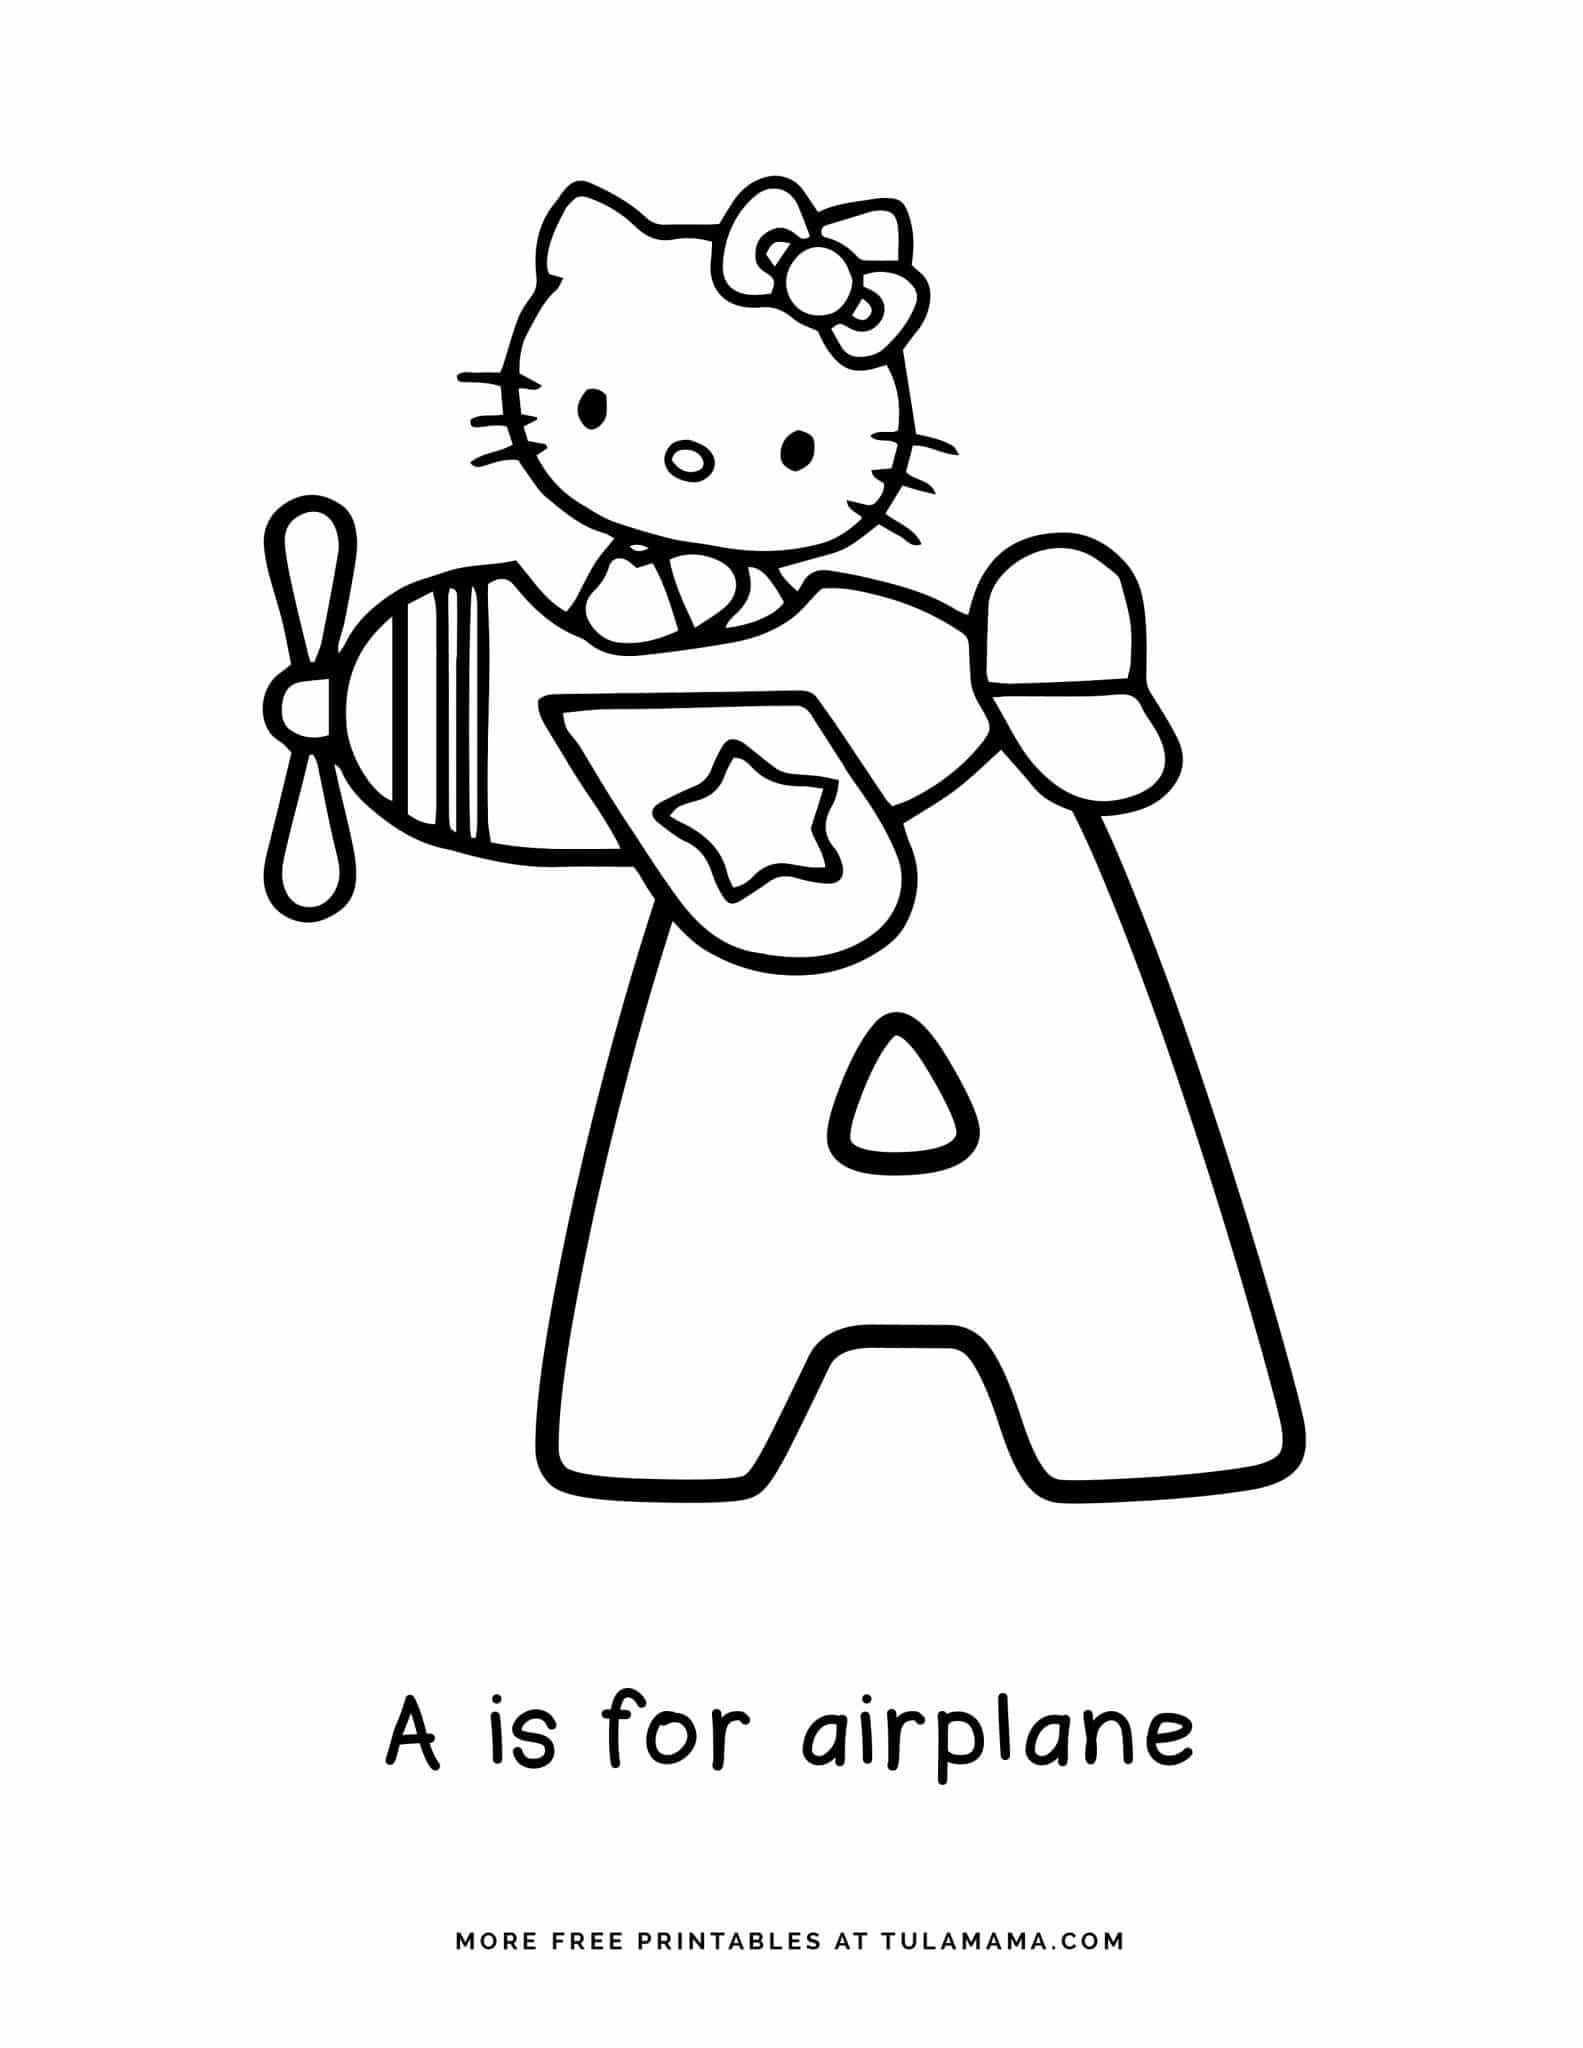 Free Hello Kitty Printables And Abc Coloring Pages In 2021 Hello Kitty Printables Hello Kitty Colouring Pages Hello Kitty Coloring